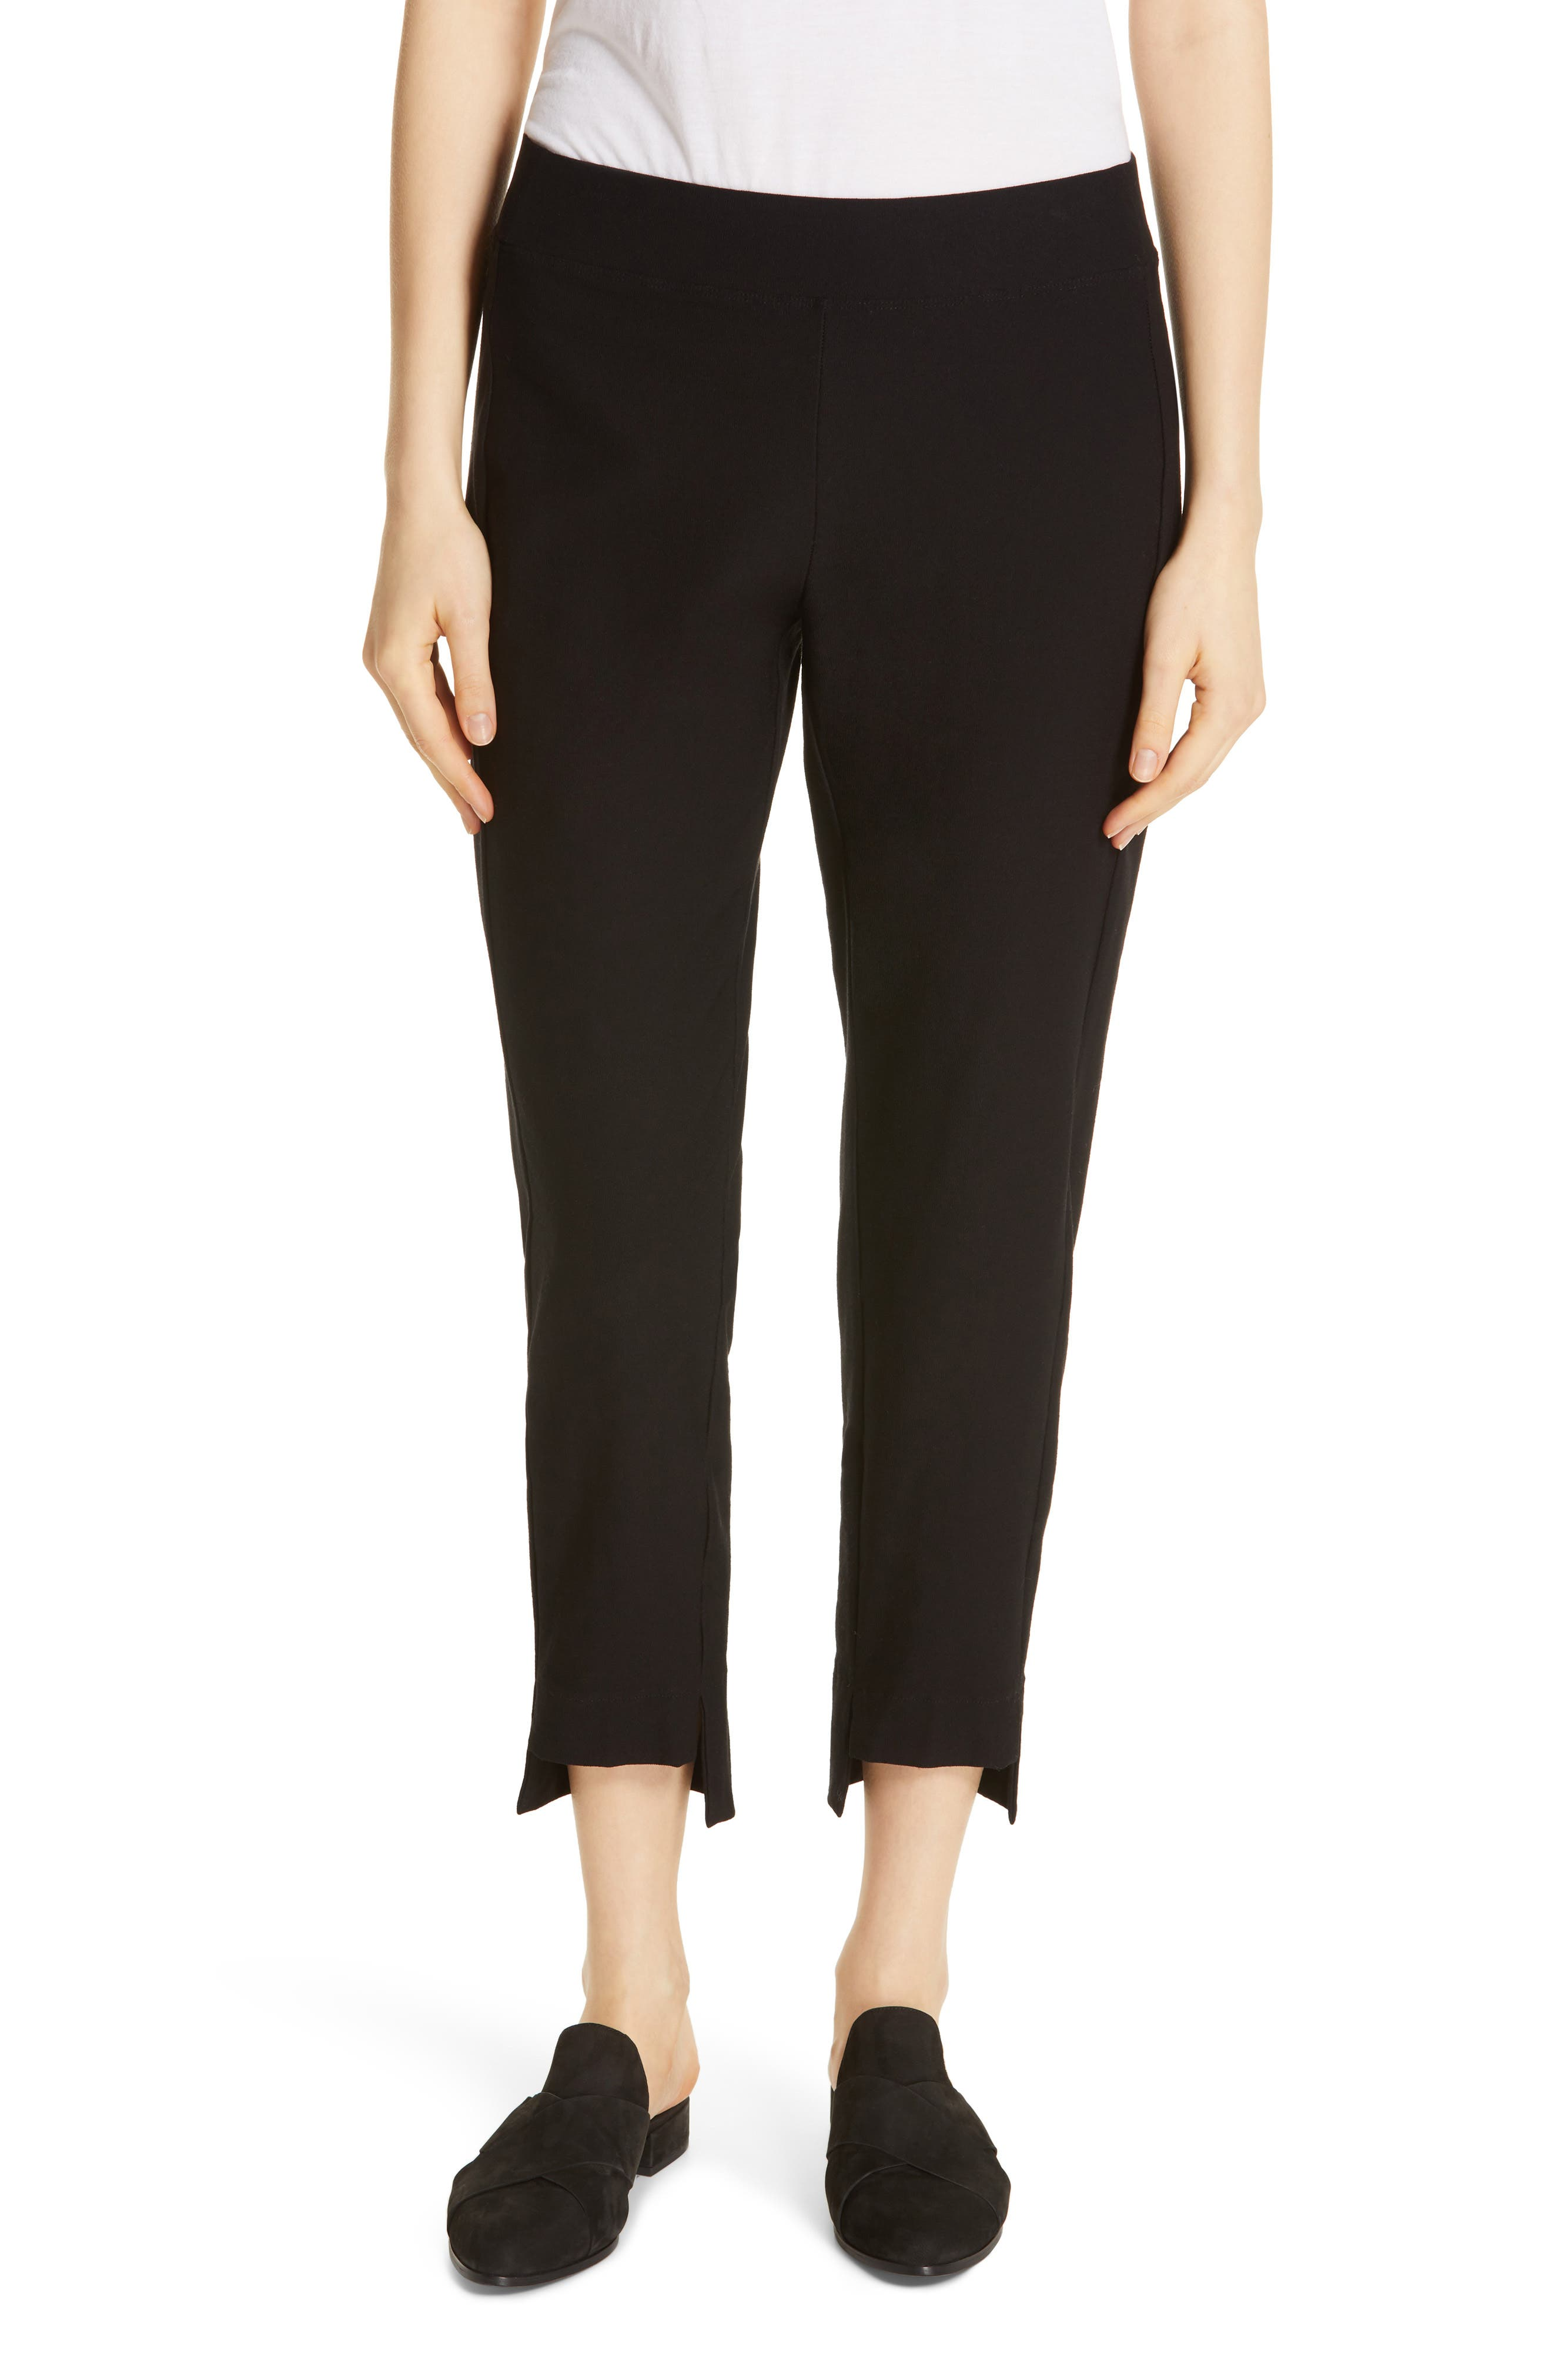 EILEEN FISHER, Slim Ankle Pants, Main thumbnail 1, color, 001